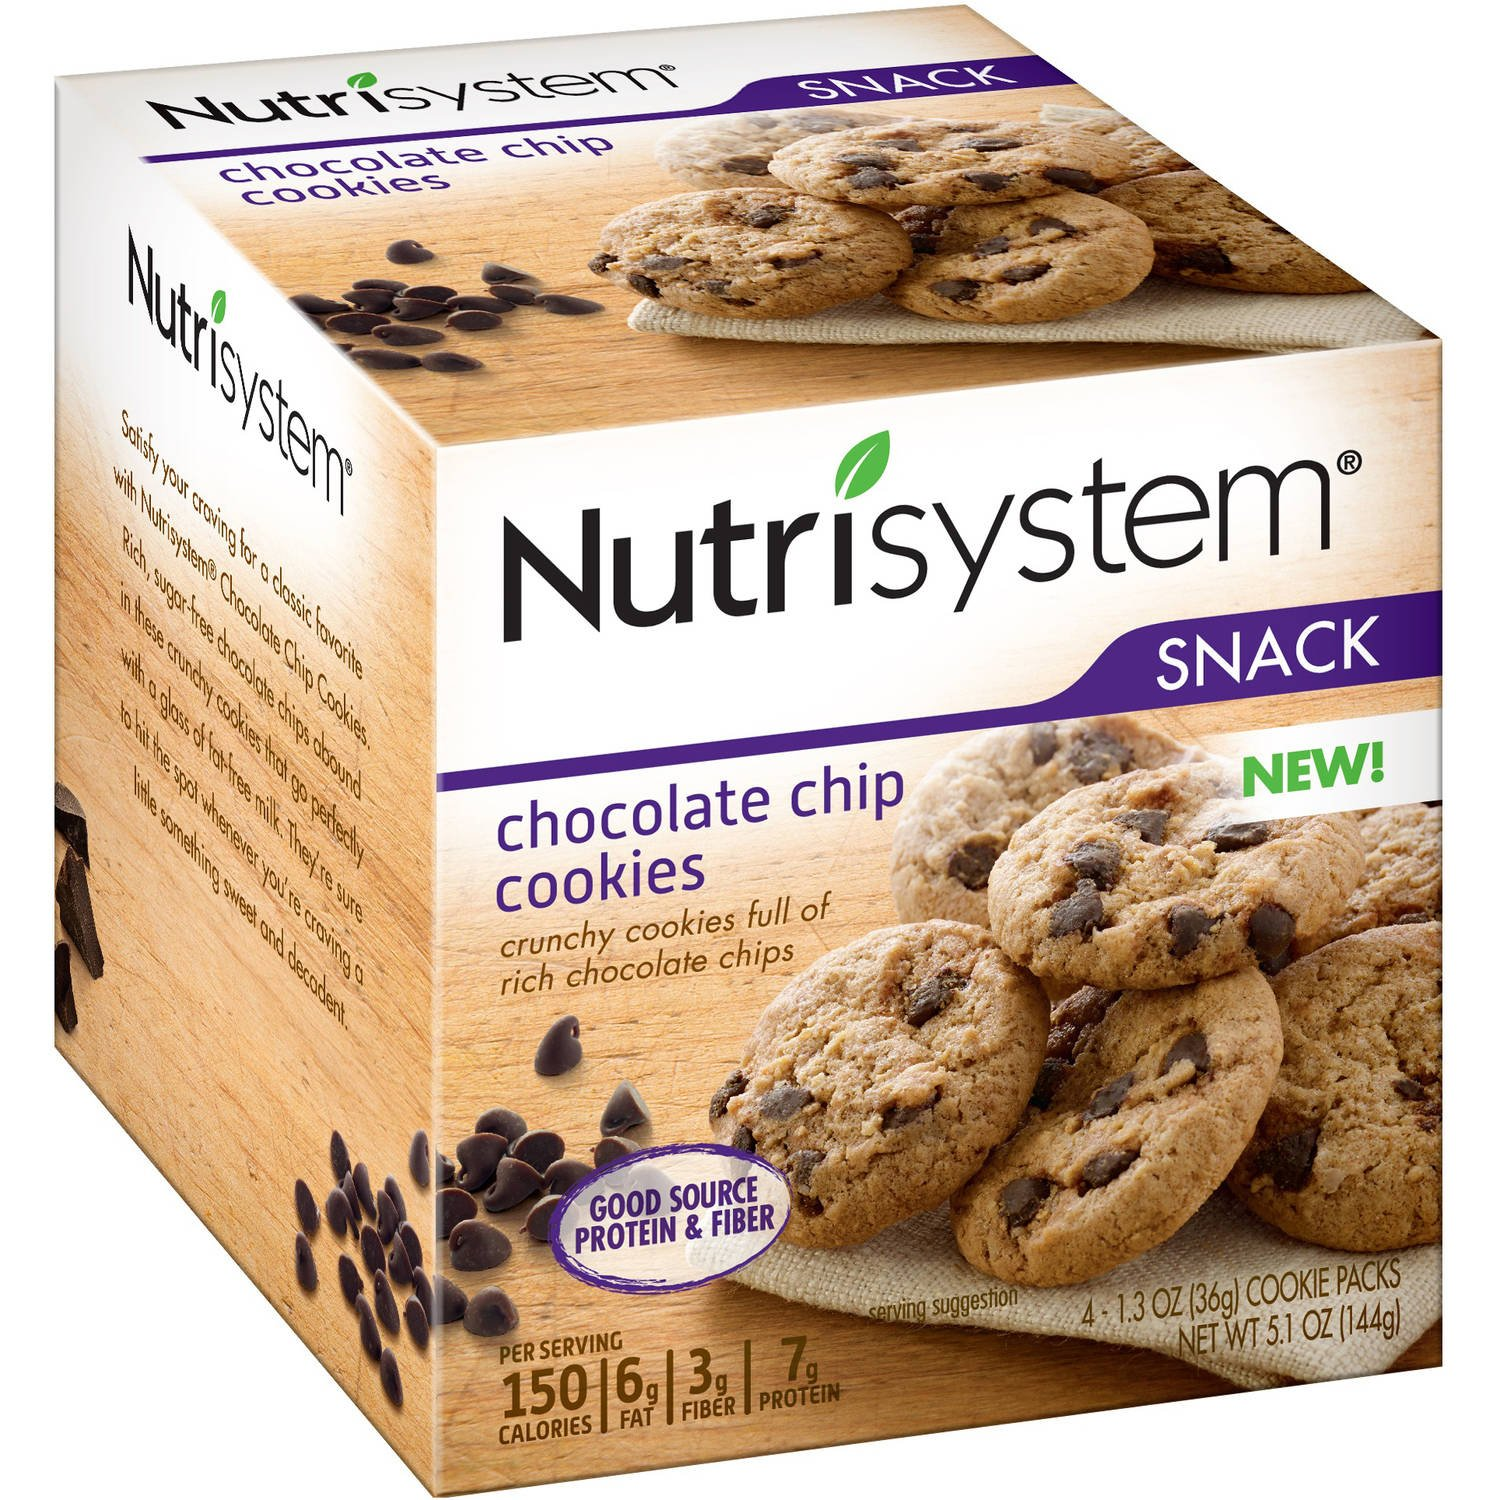 Nutrisystem Snack Chocolate Chip Cookies, (24 Packets of Cookies ) by Nutrisystem (Image #2)